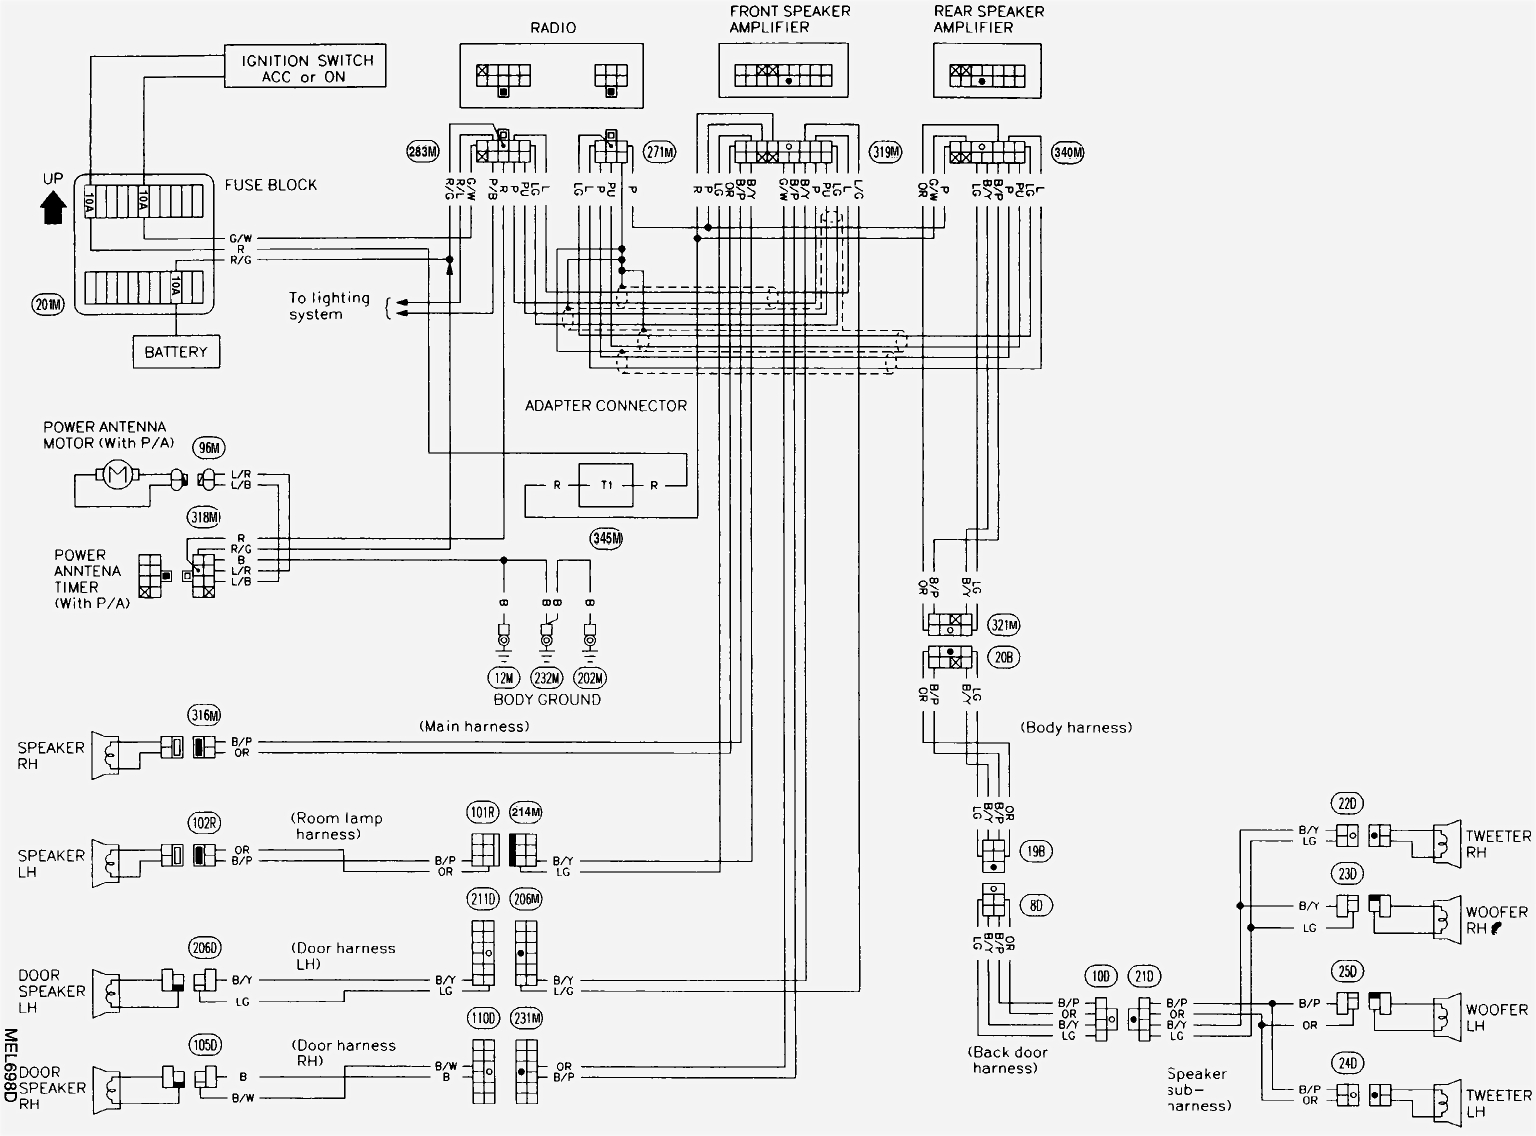 true gdm 72f wiring diagram | free wiring diagram true t 49f wiring diagram true freezer t 49f wiring diagram